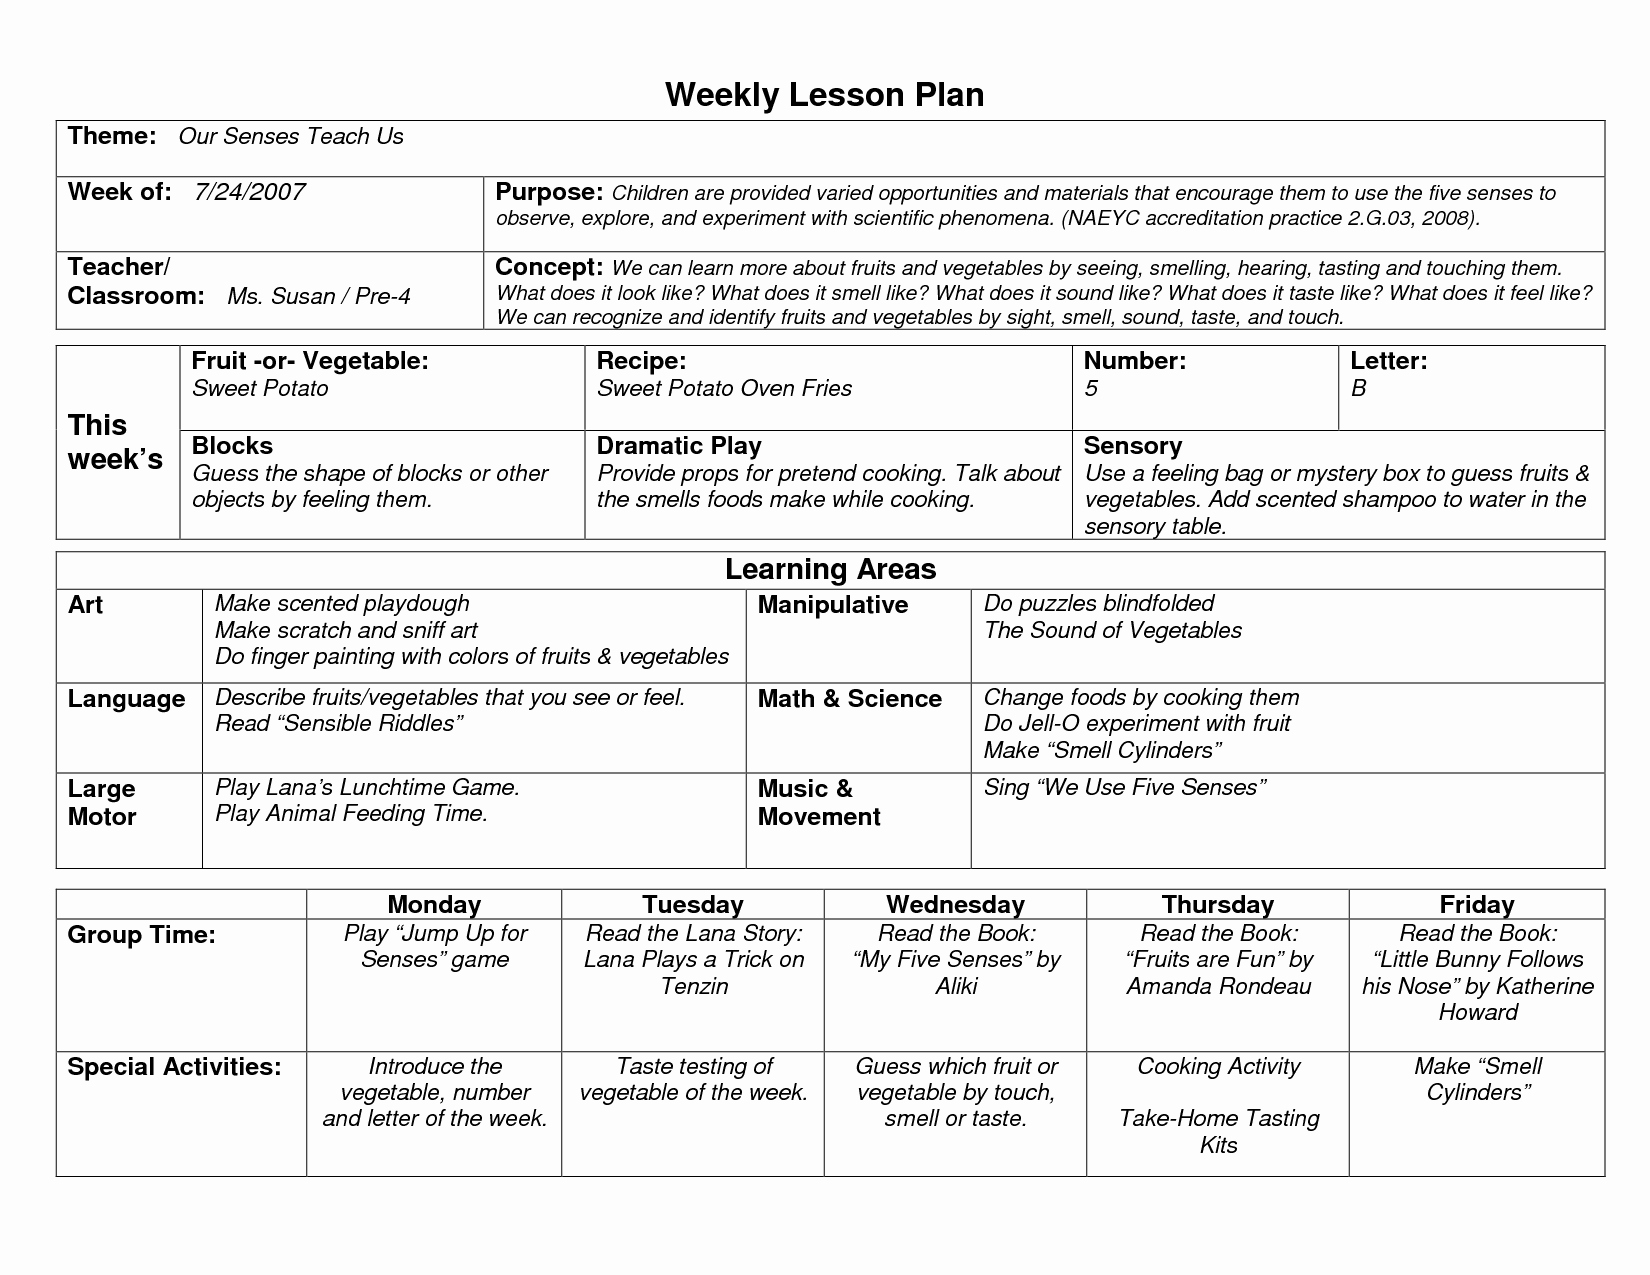 Lesson Plan Template for toddlers Awesome Naeyc Lesson Plan Template for Preschool